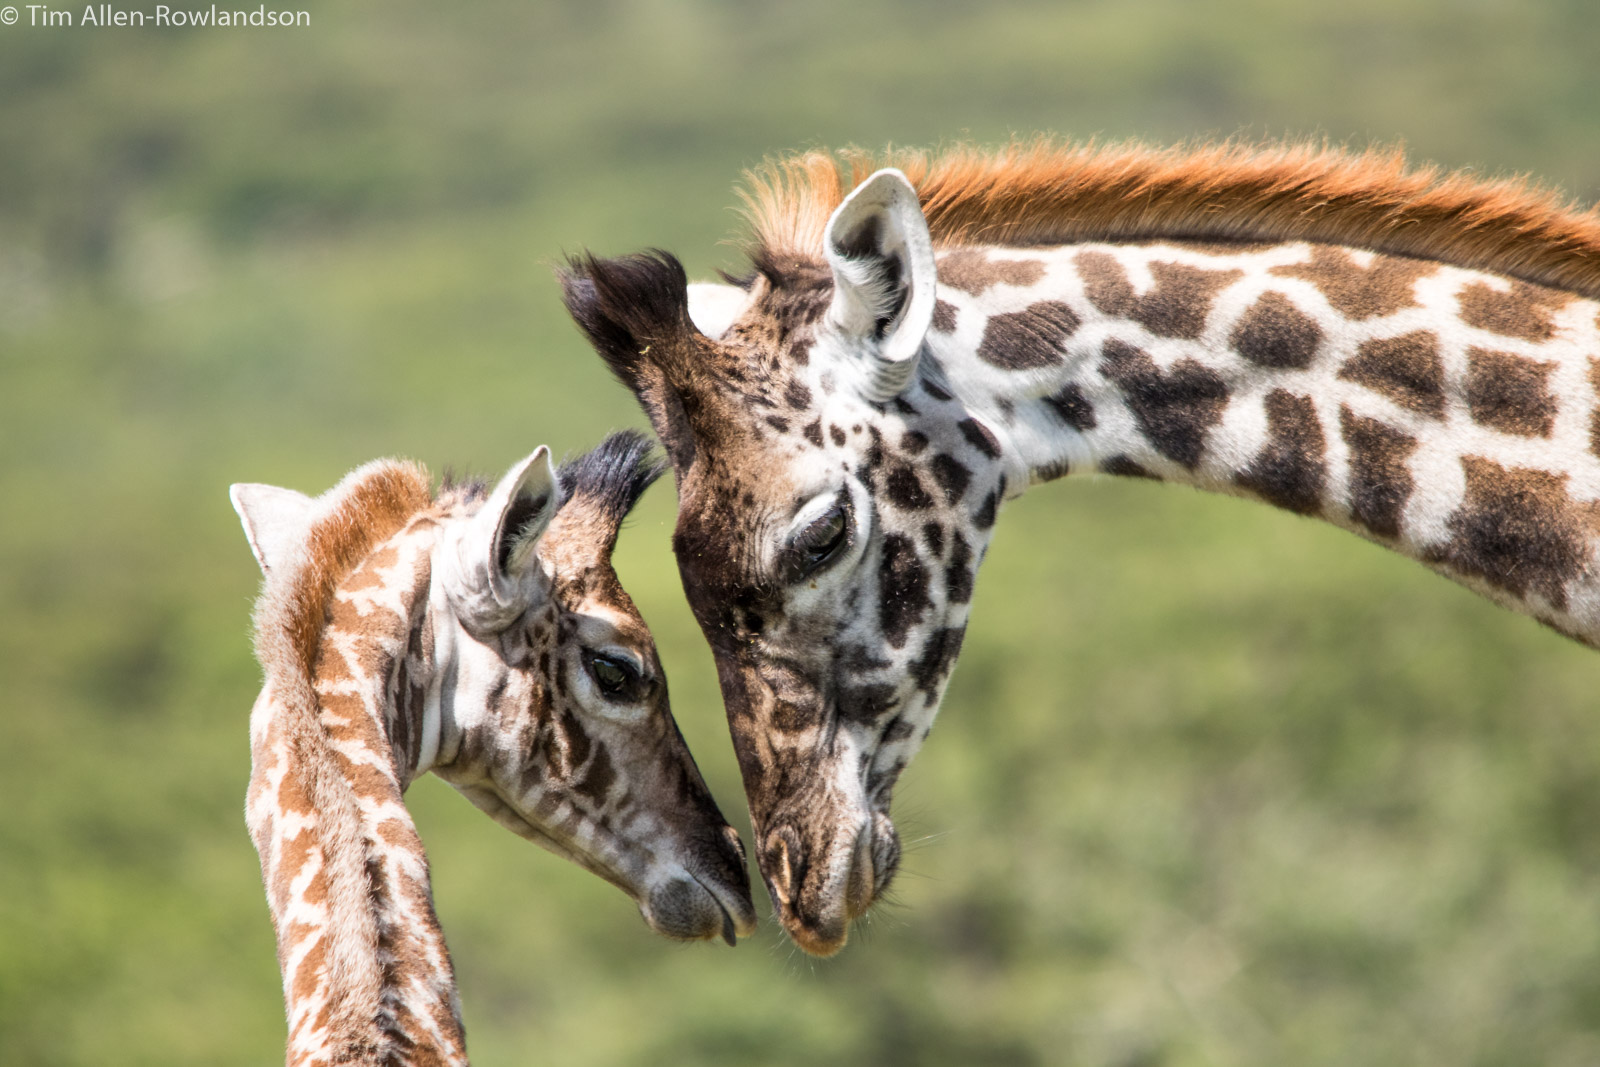 Giraffe mother and calf bonding, Serengeti